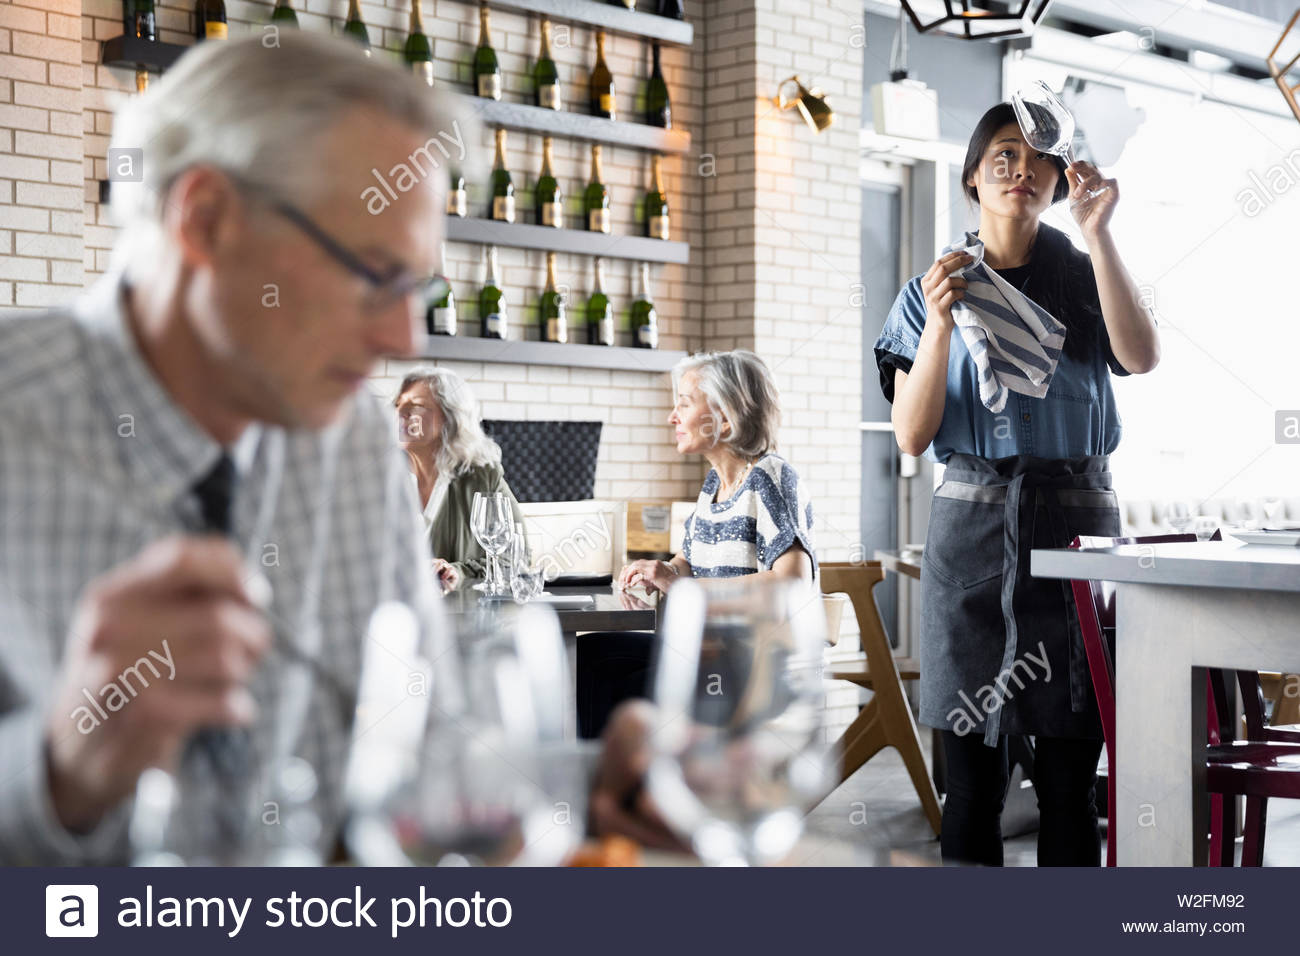 Waitress cleaning wine glasses in restaurant - Stock Image